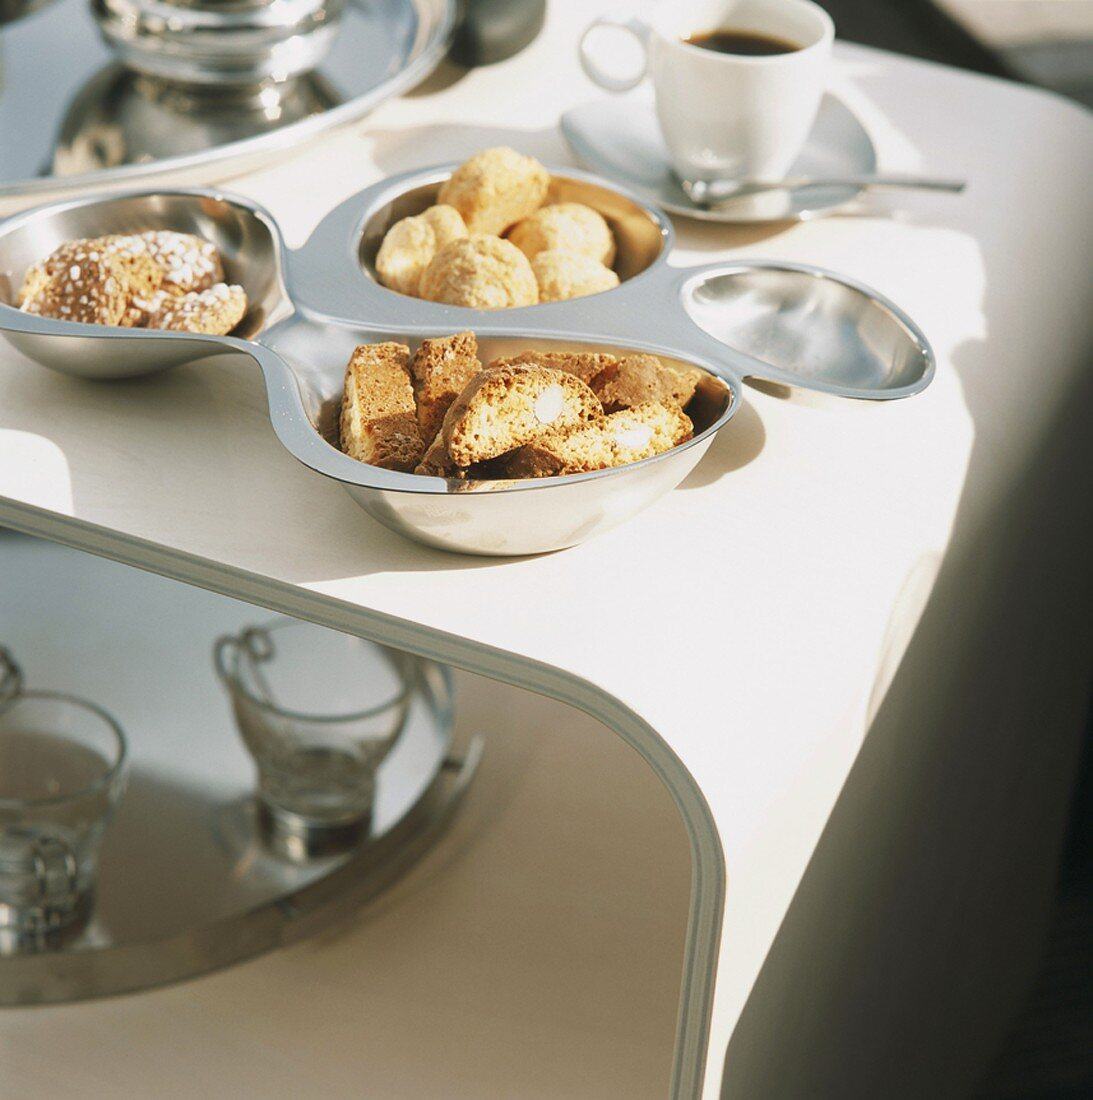 Biscotti e caffè (Biscuits to serve with coffee, Italy)